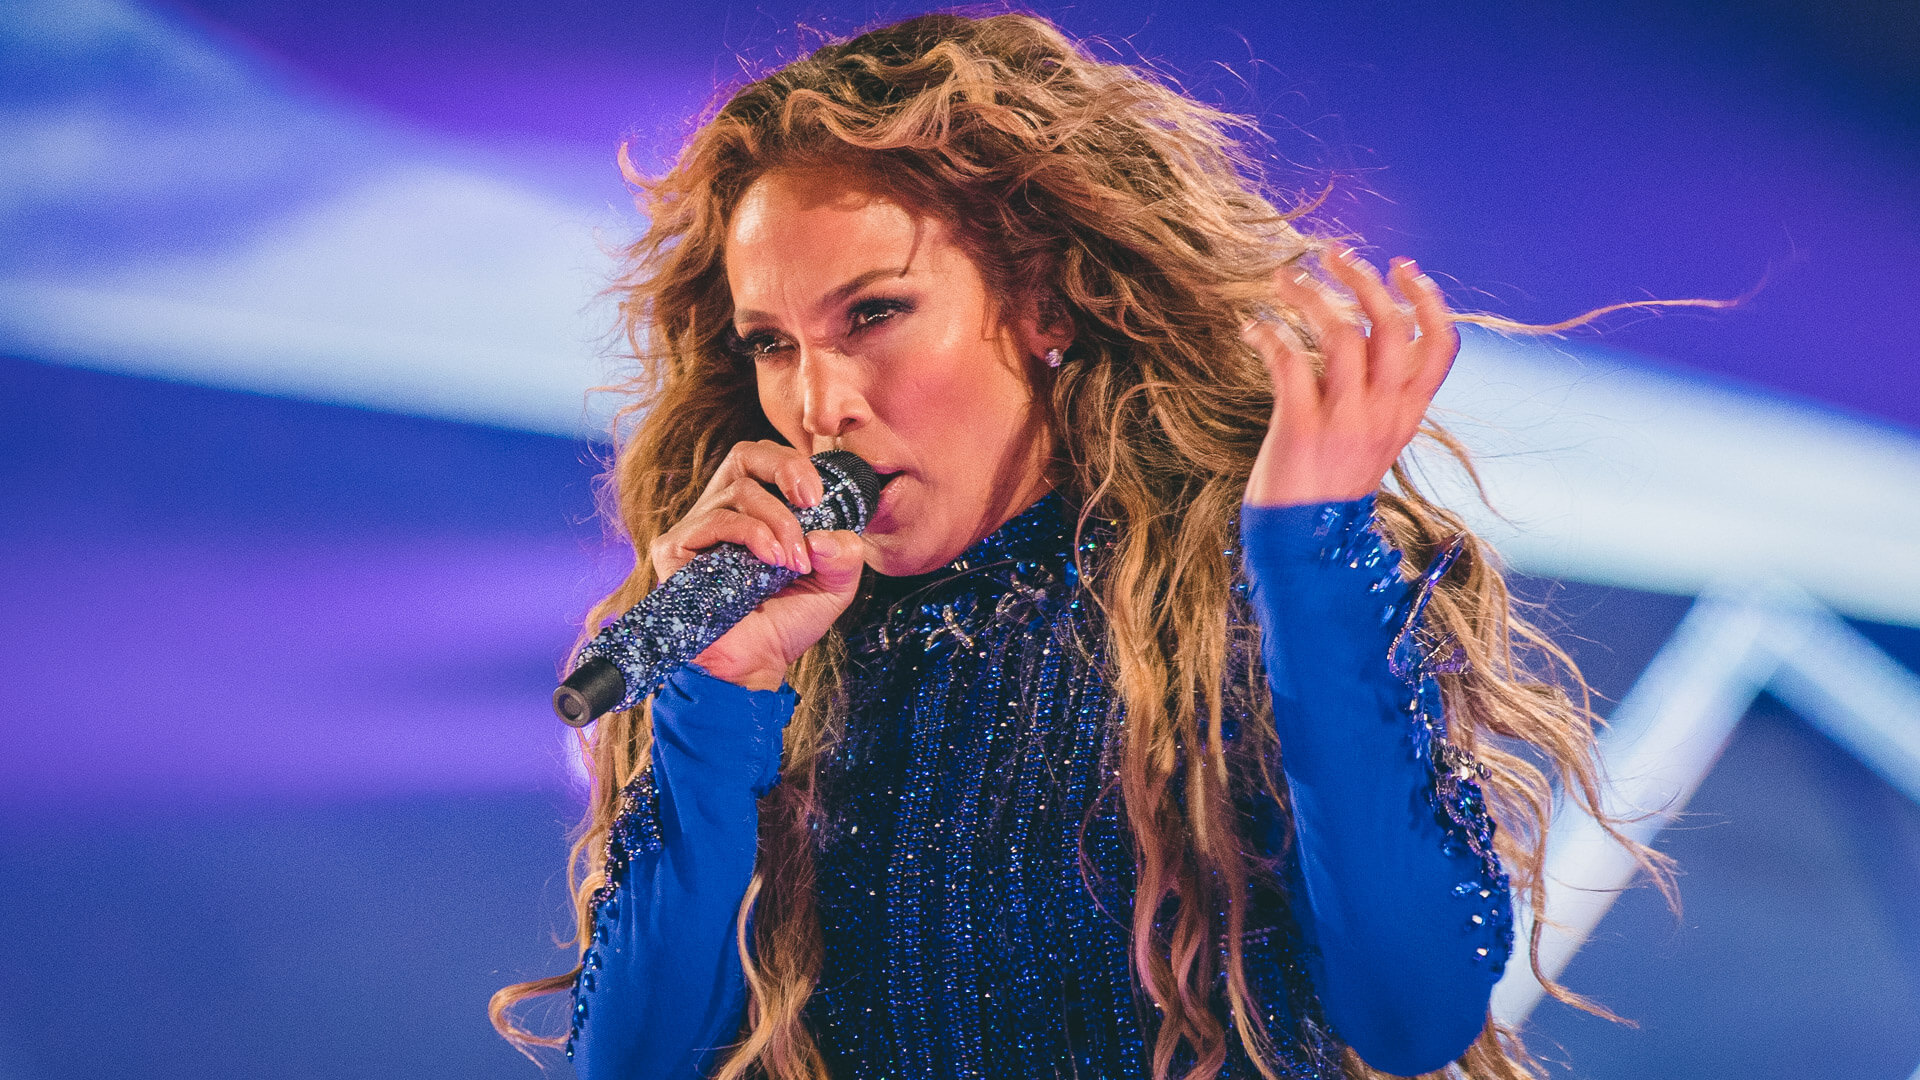 J Lo Lady Gaga And More The Net Worths Of The Super Bowl S Richest Halftime Performers Gobanking